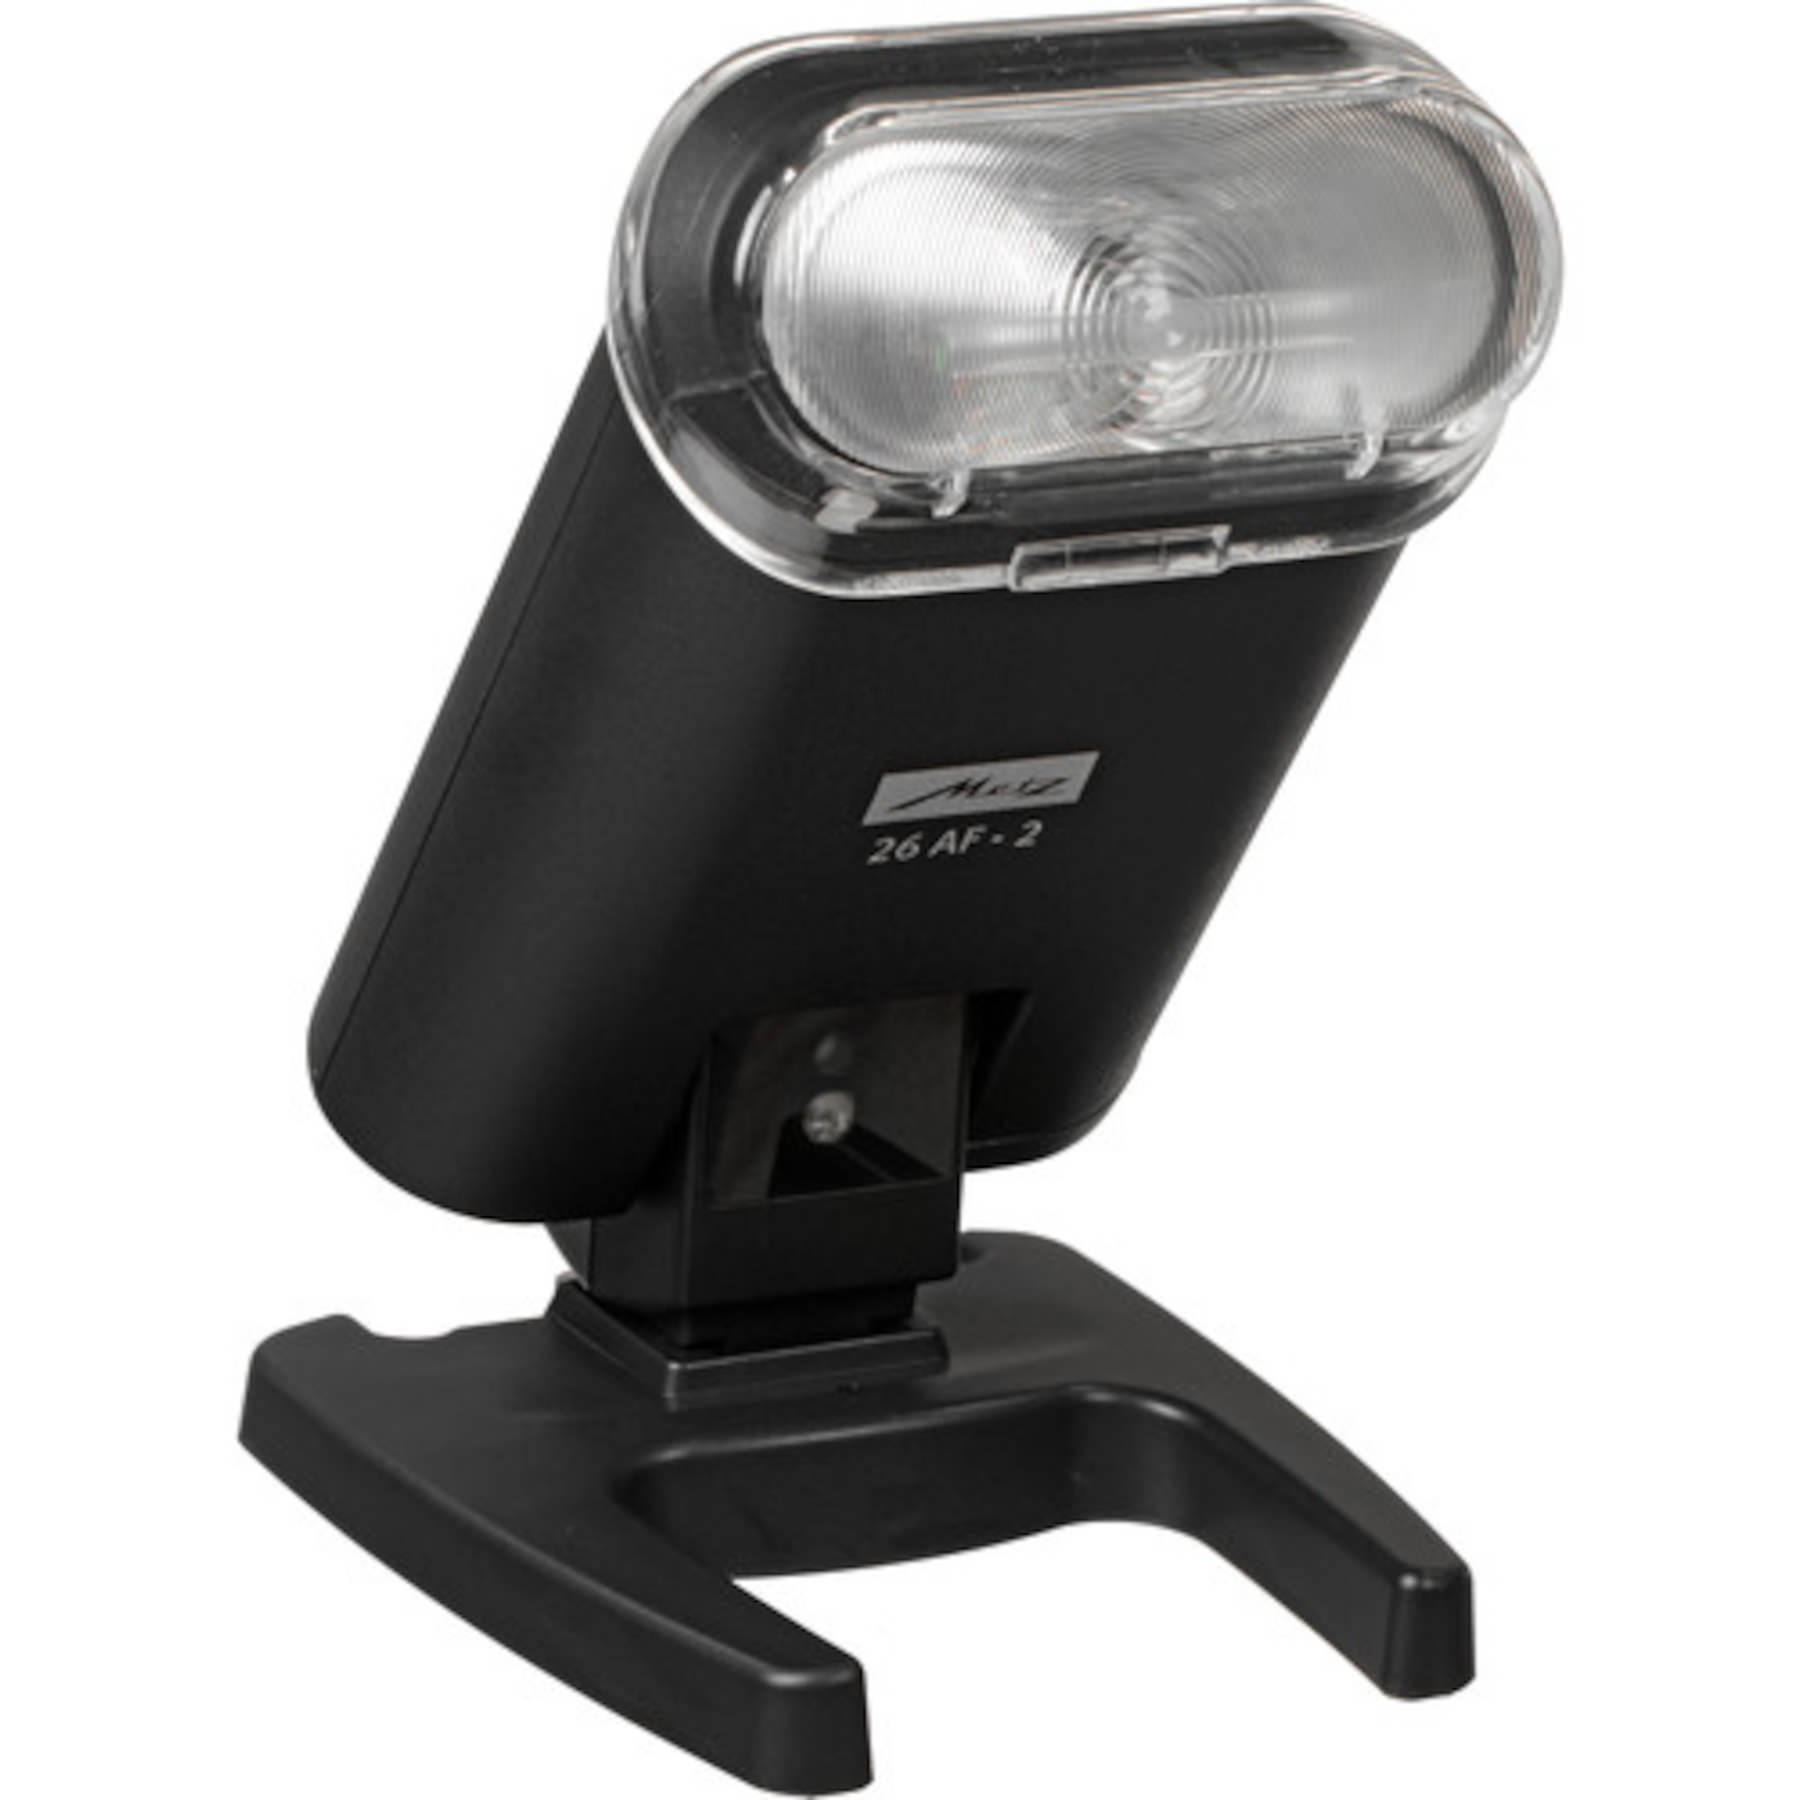 Metz Digital Sony Flash 26 AF-